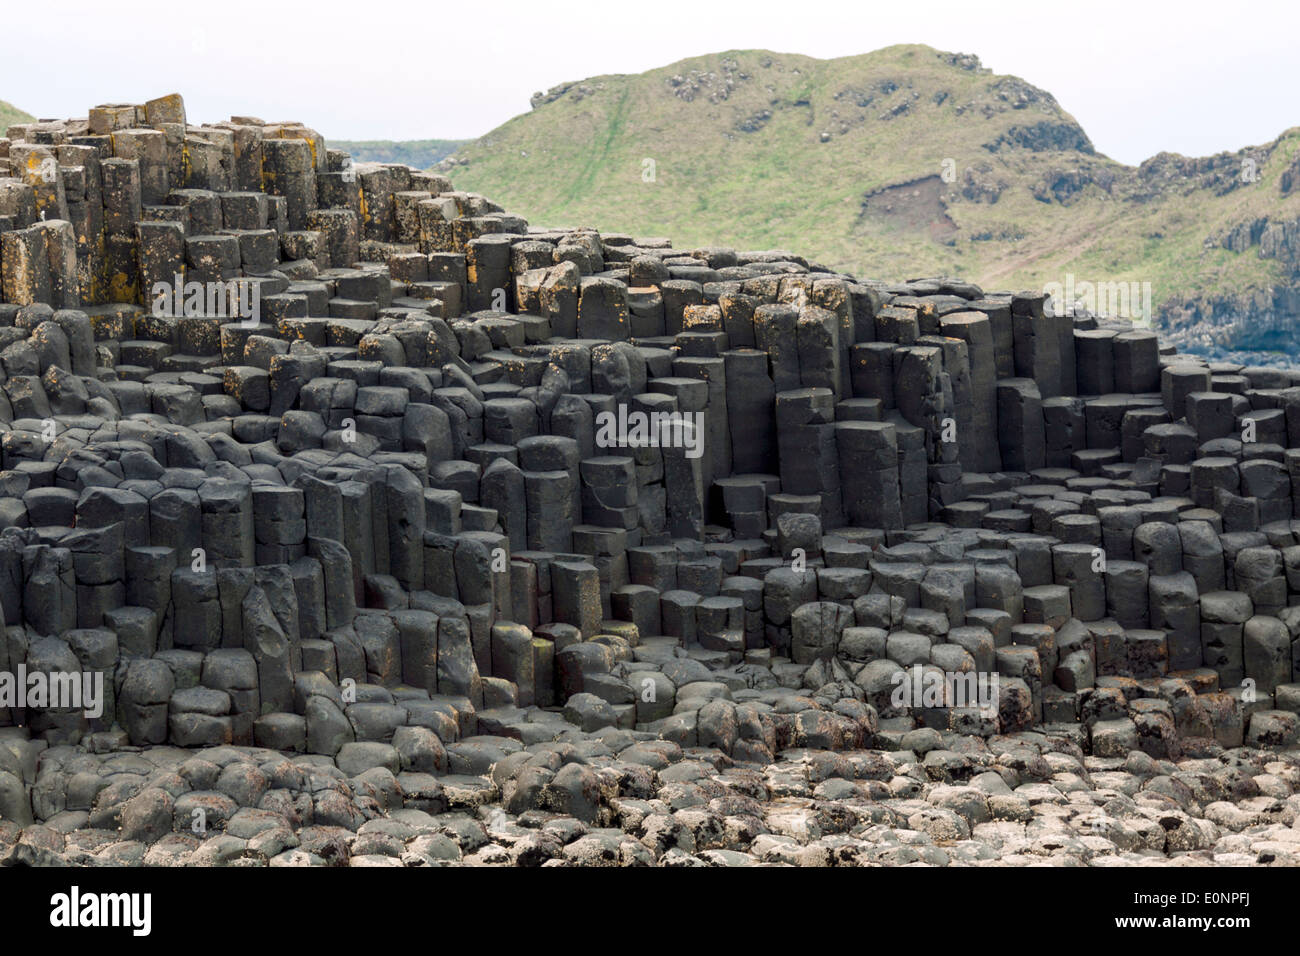 Giant's Causeway, a world-famous UNESCO World Heritage Site, situated on the Antrim coast of Northern Ireland, United Kingdom. - Stock Image